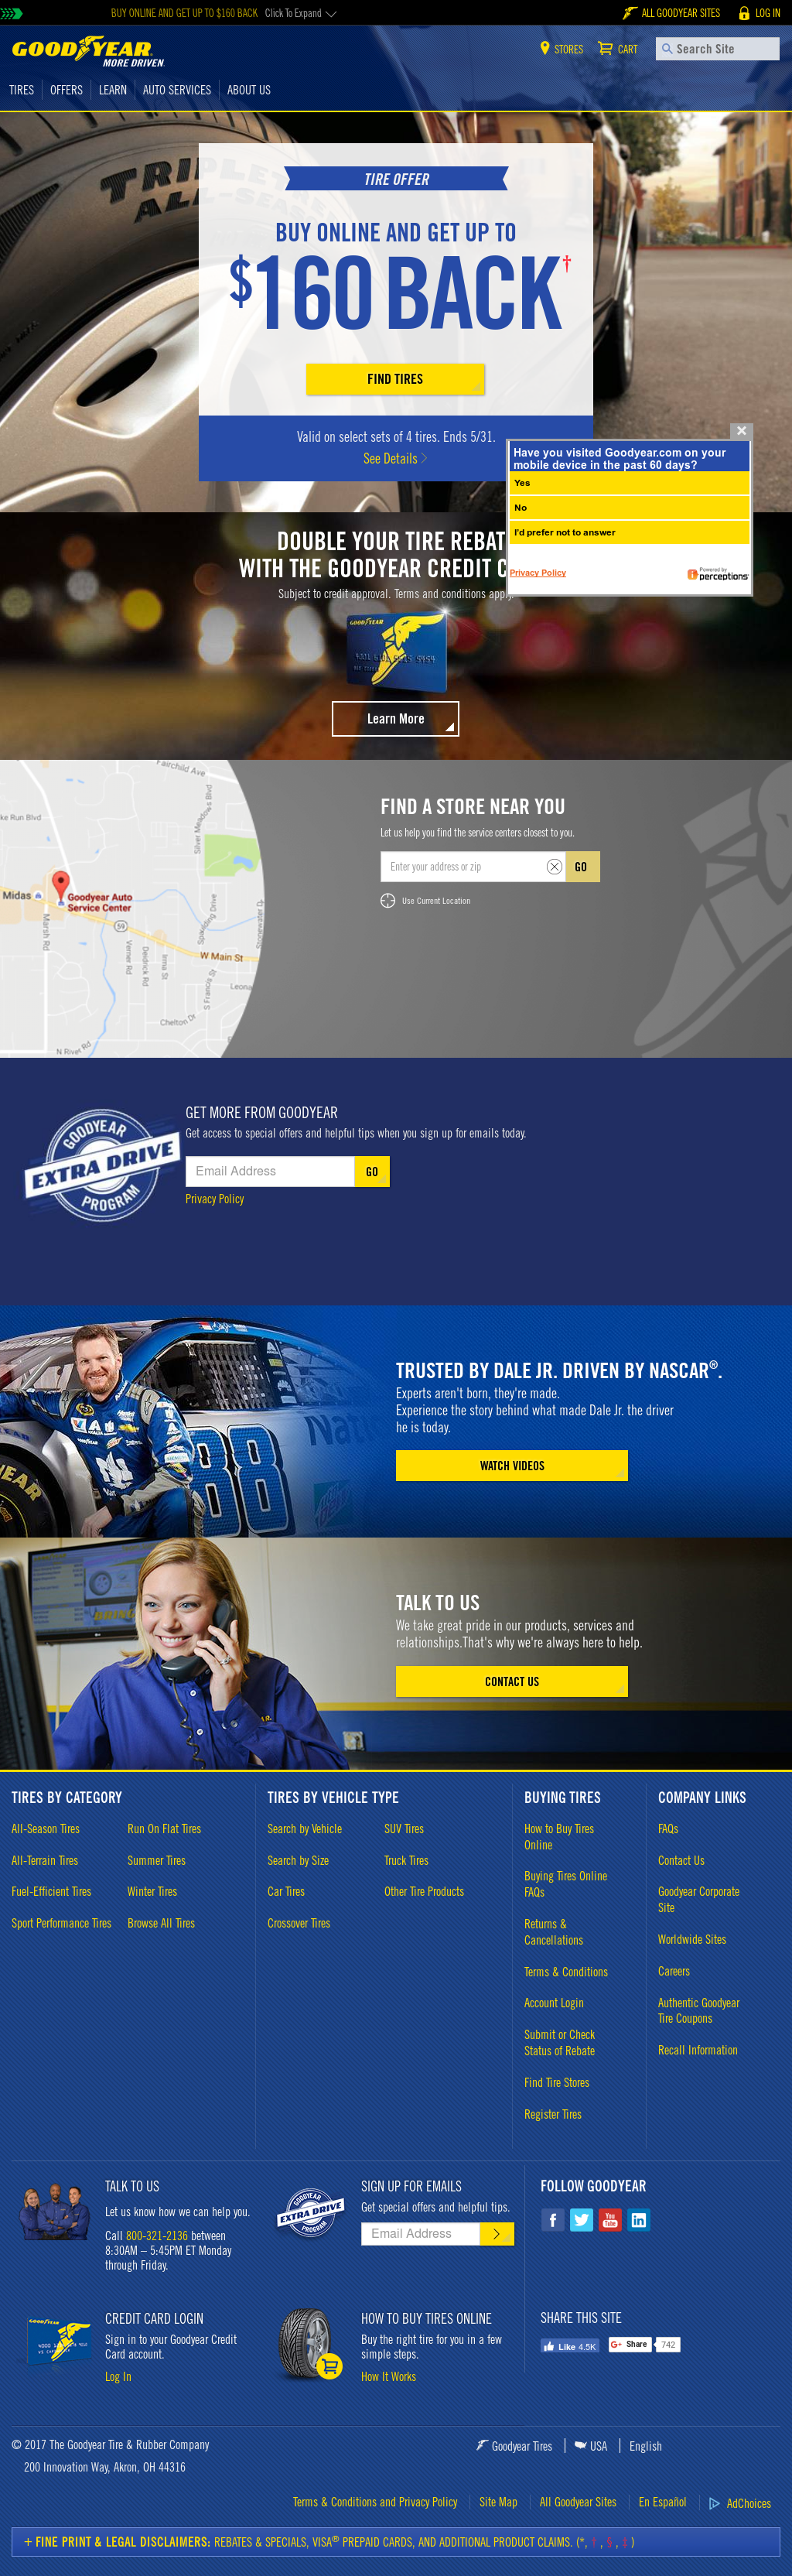 Goodyear Competitors, Revenue and Employees - Owler Company Profile